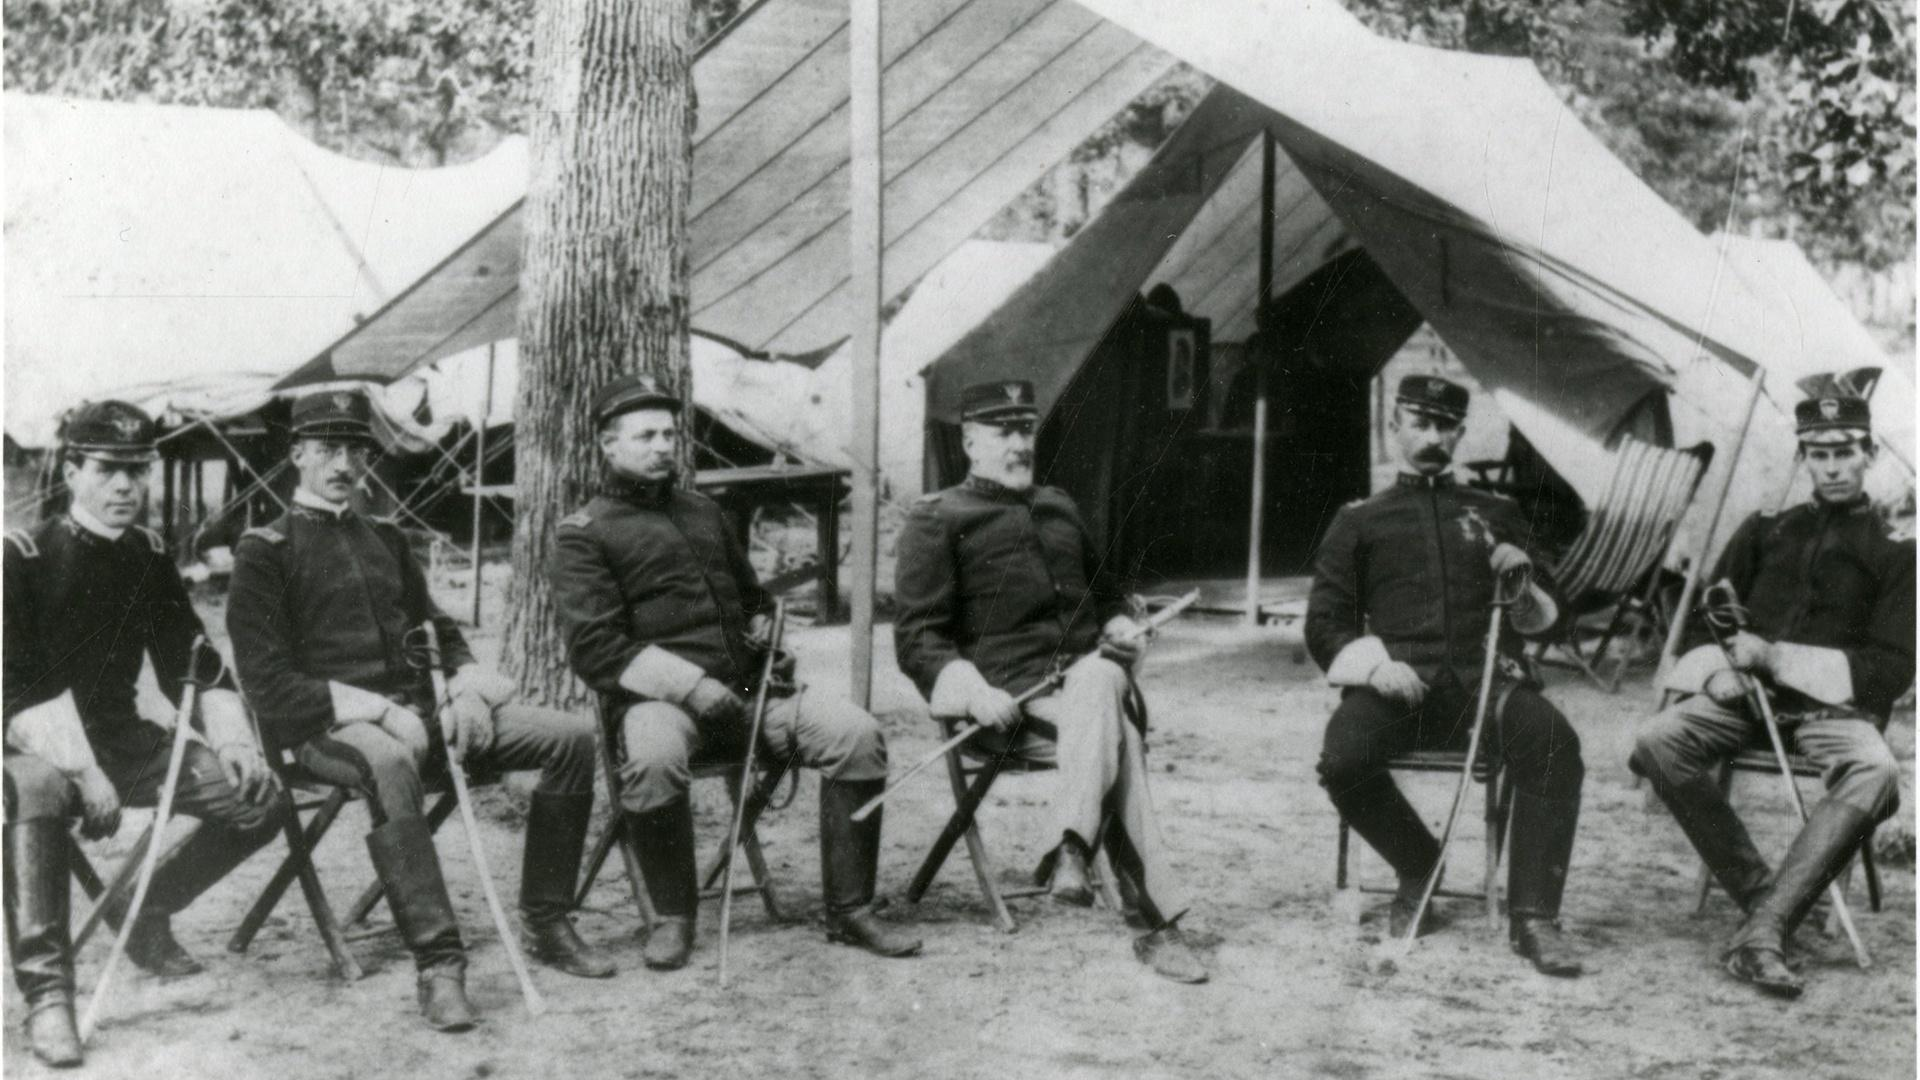 grigsby with other officers